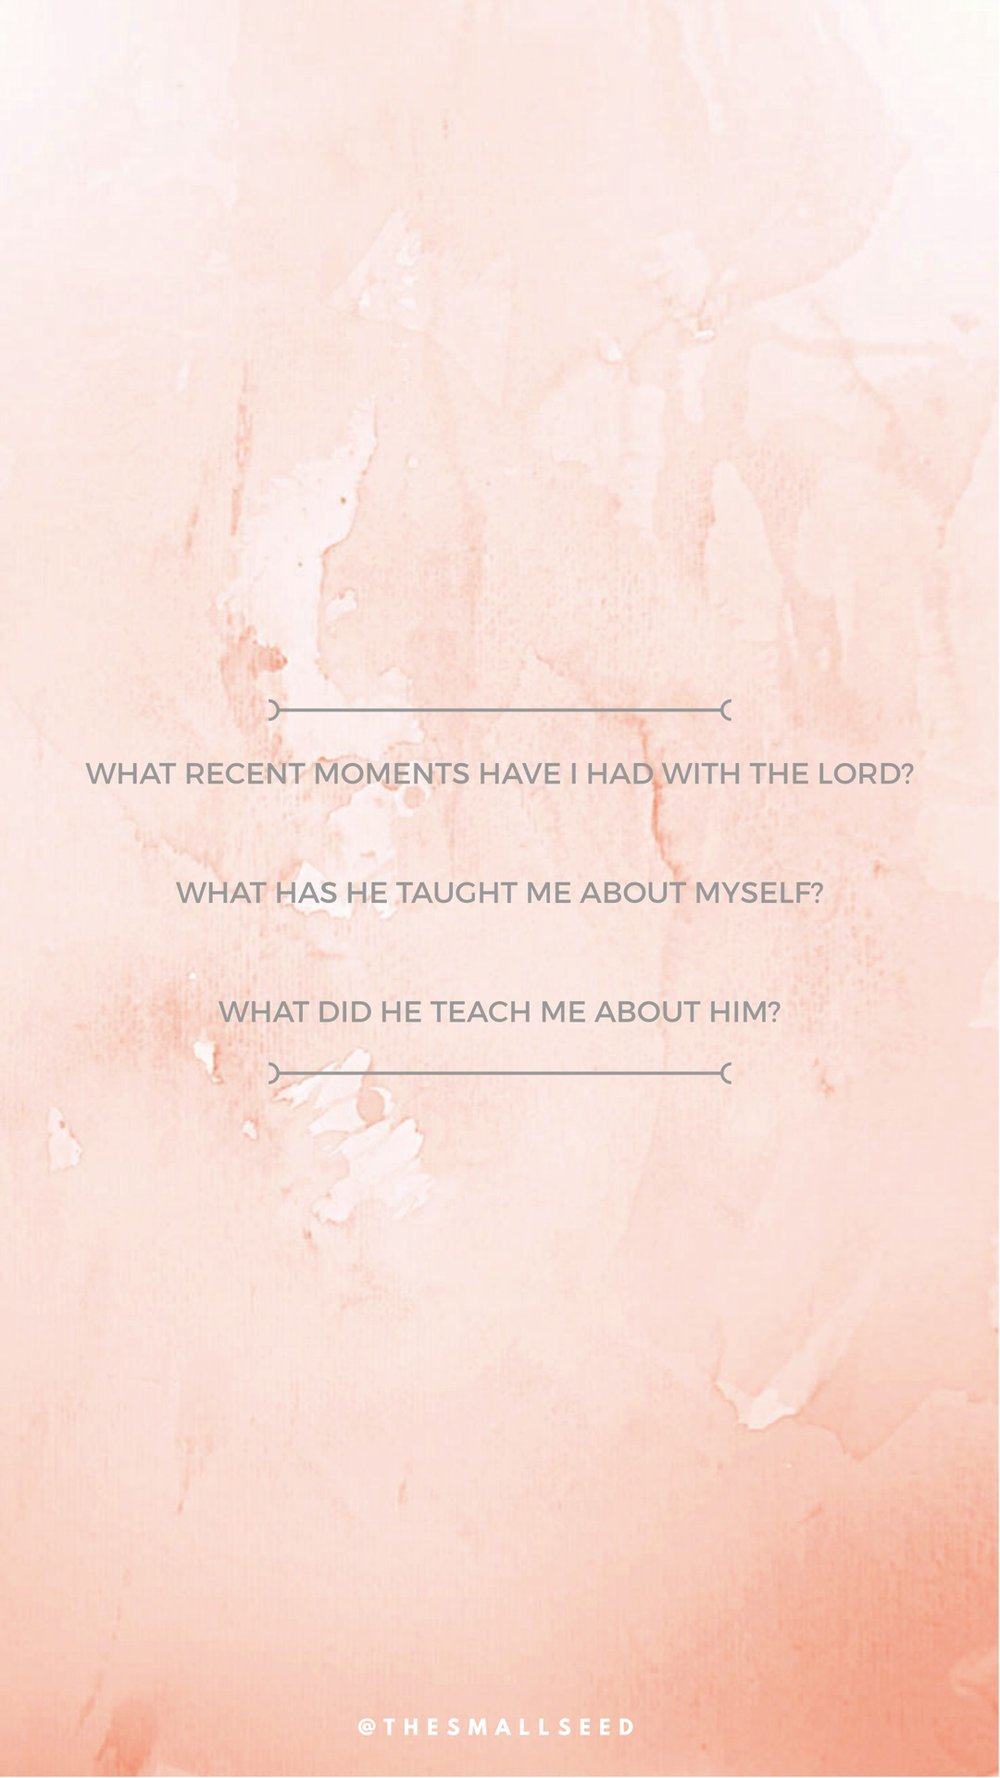 Moments With The Lord*